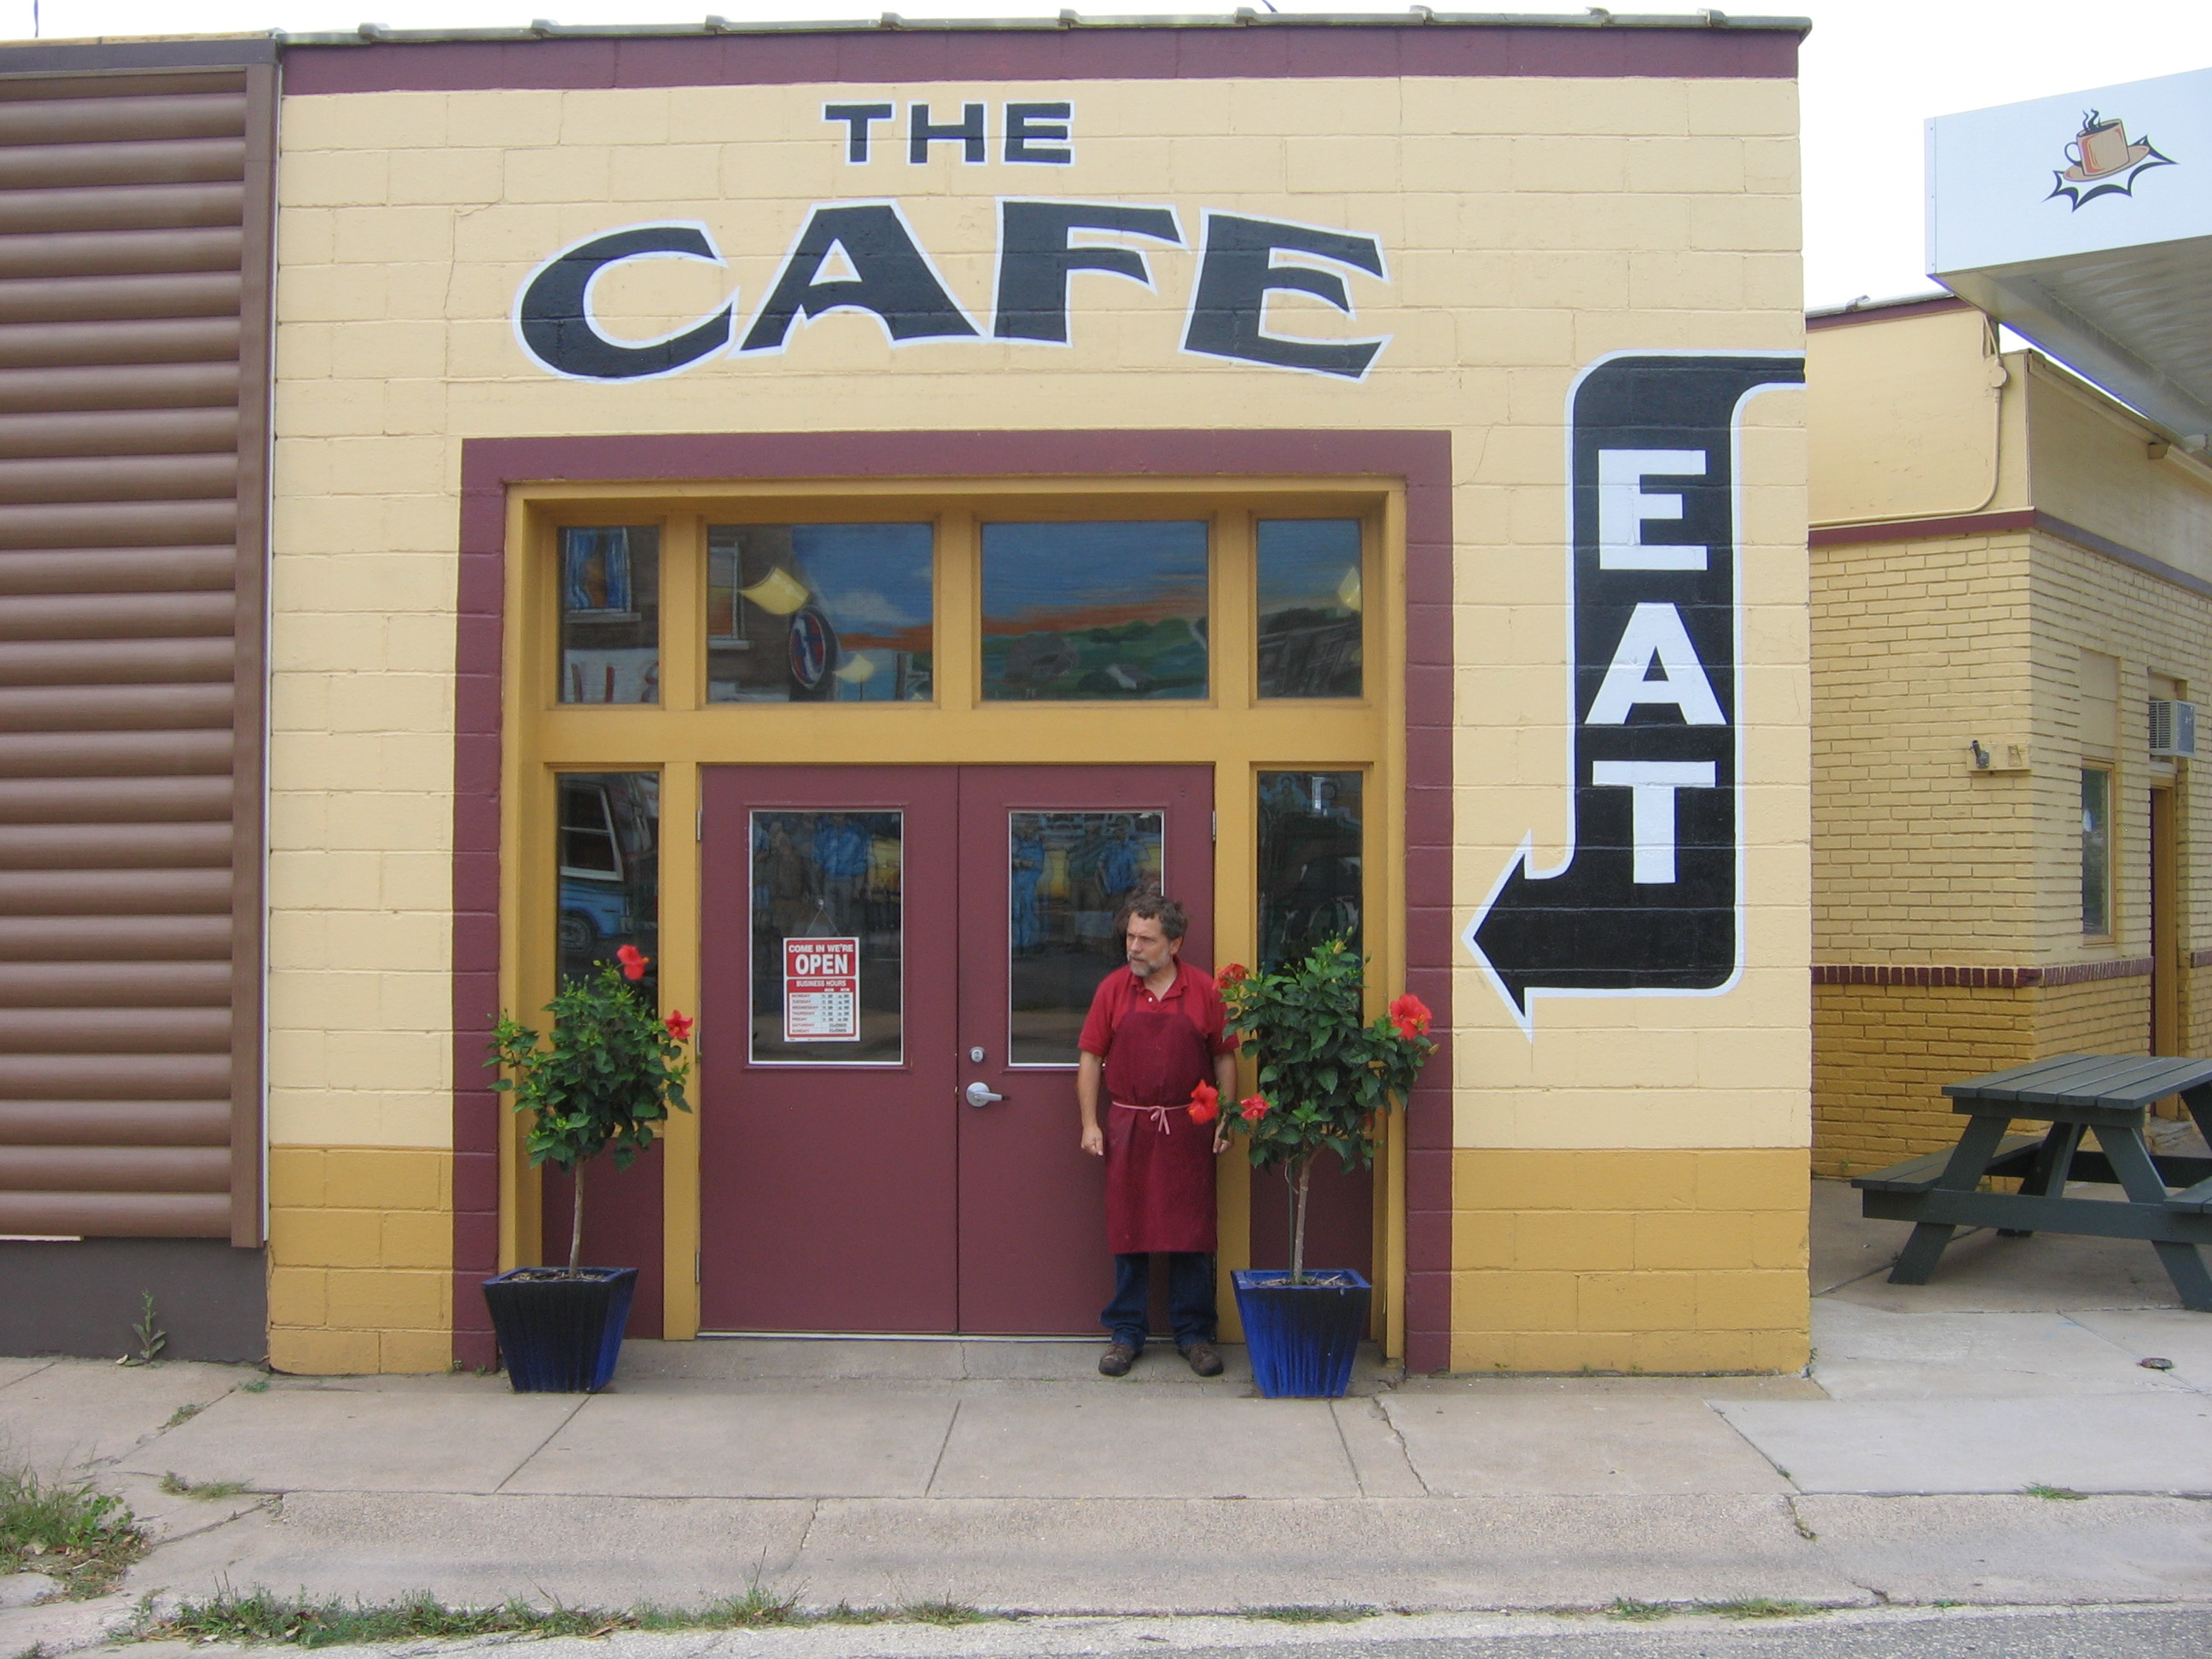 The Cafe across the street